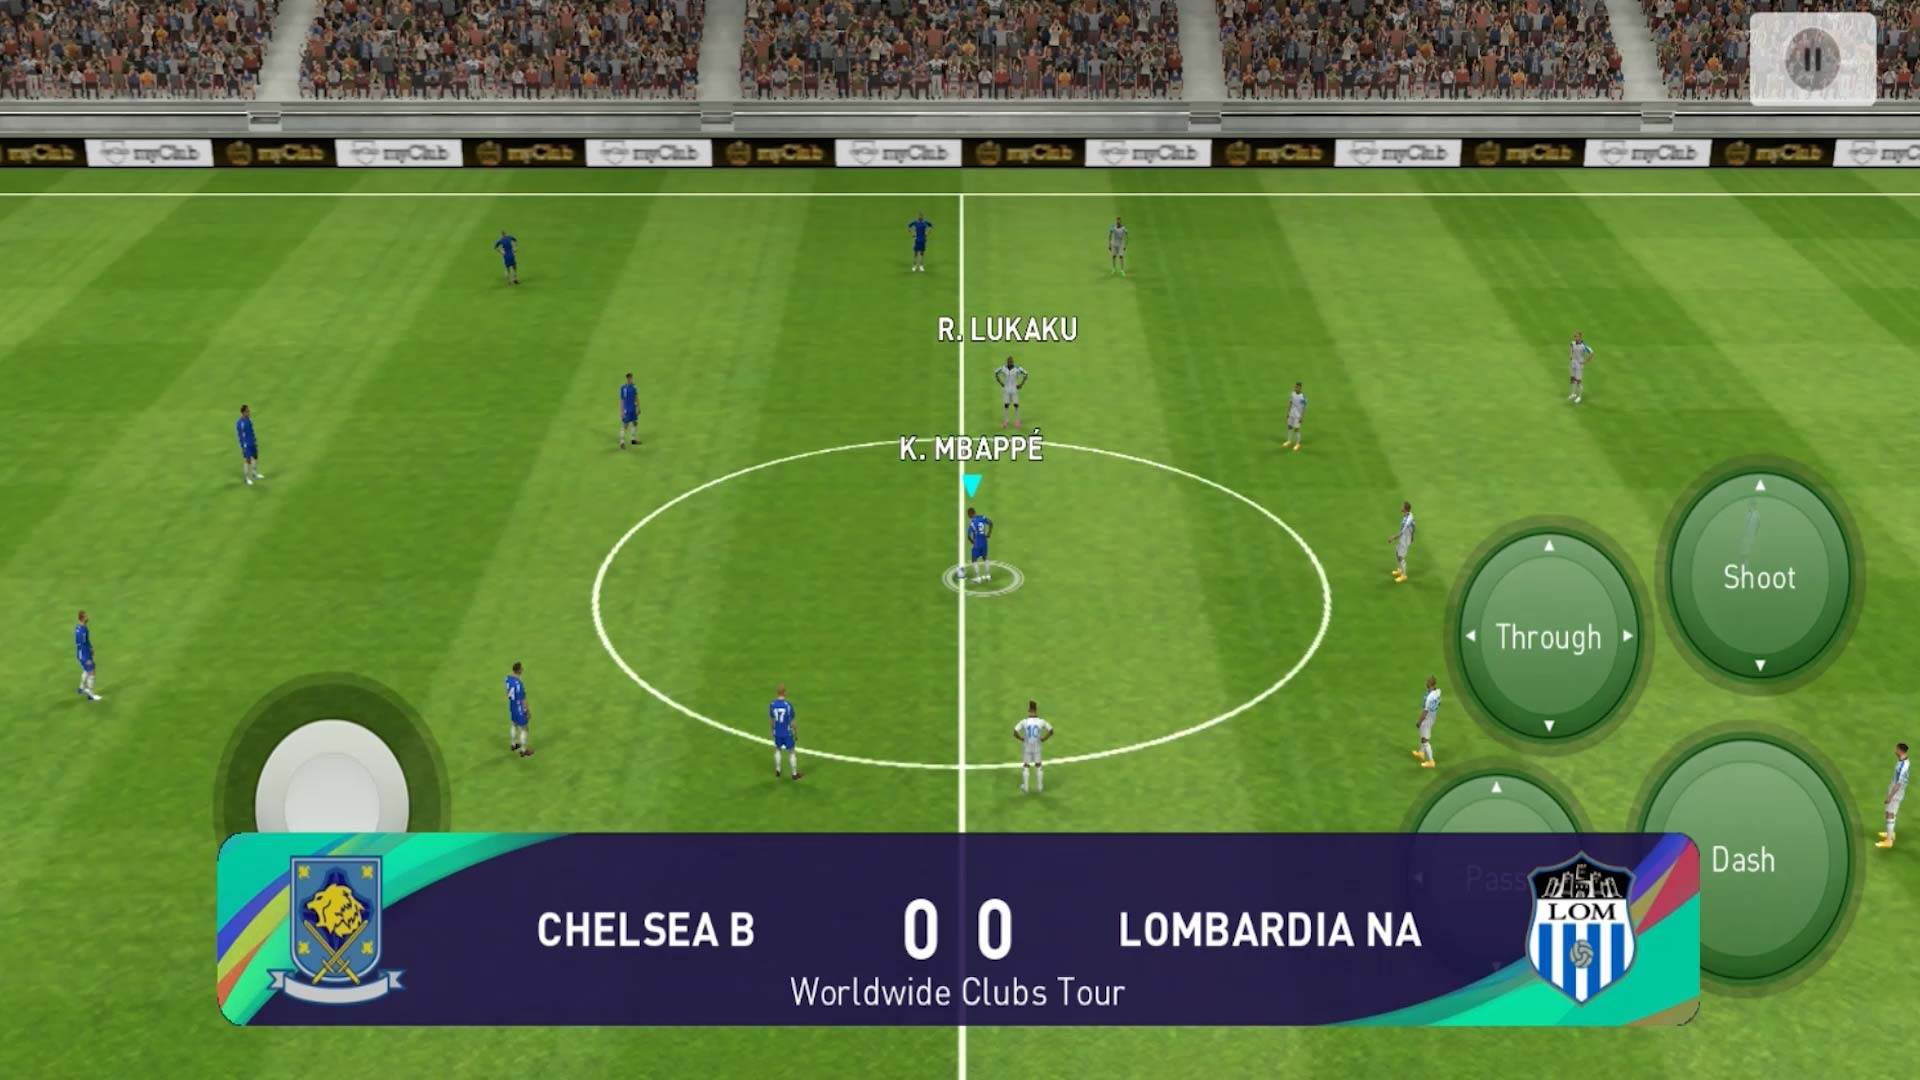 eFootball PES 2021 Mobile V5.1.0 Android Offline New Patch Transfers Update + New Kits Best Graphics